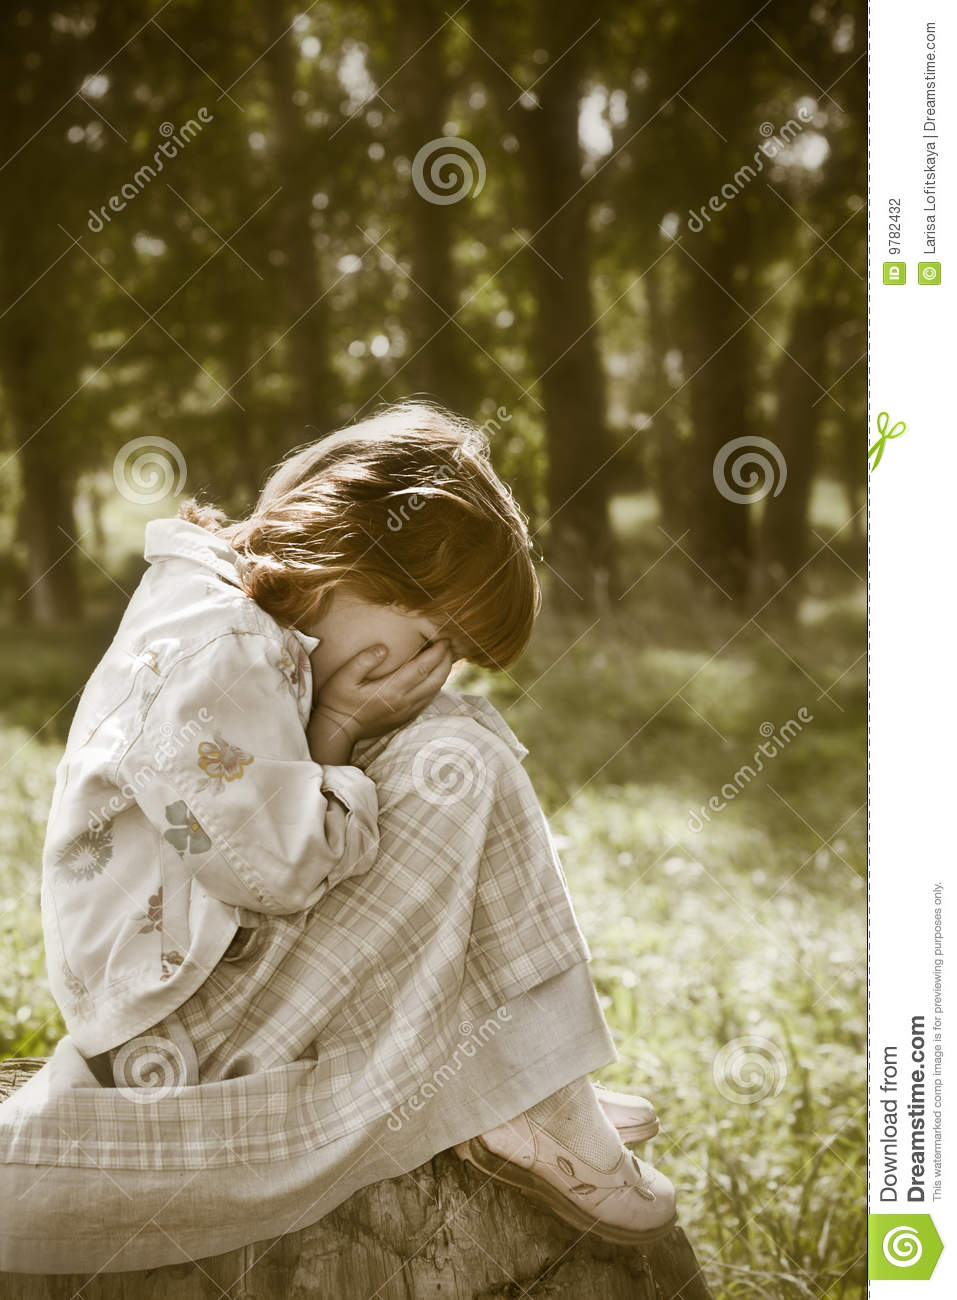 Lost child stock photo. Image of trees, light, summer ...